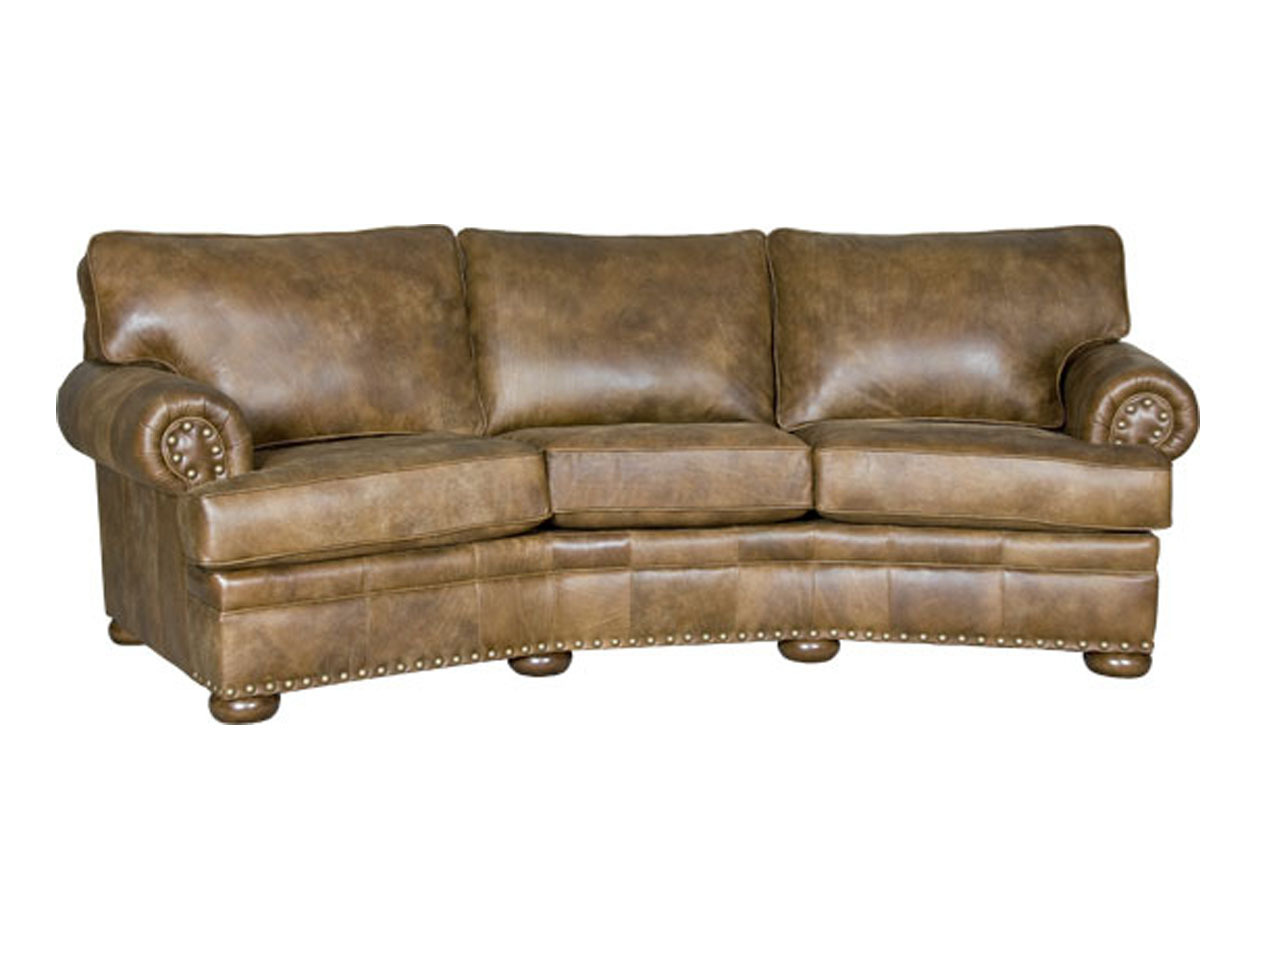 conversation sofas reviews sofa with storage compartments leather omnia canyon